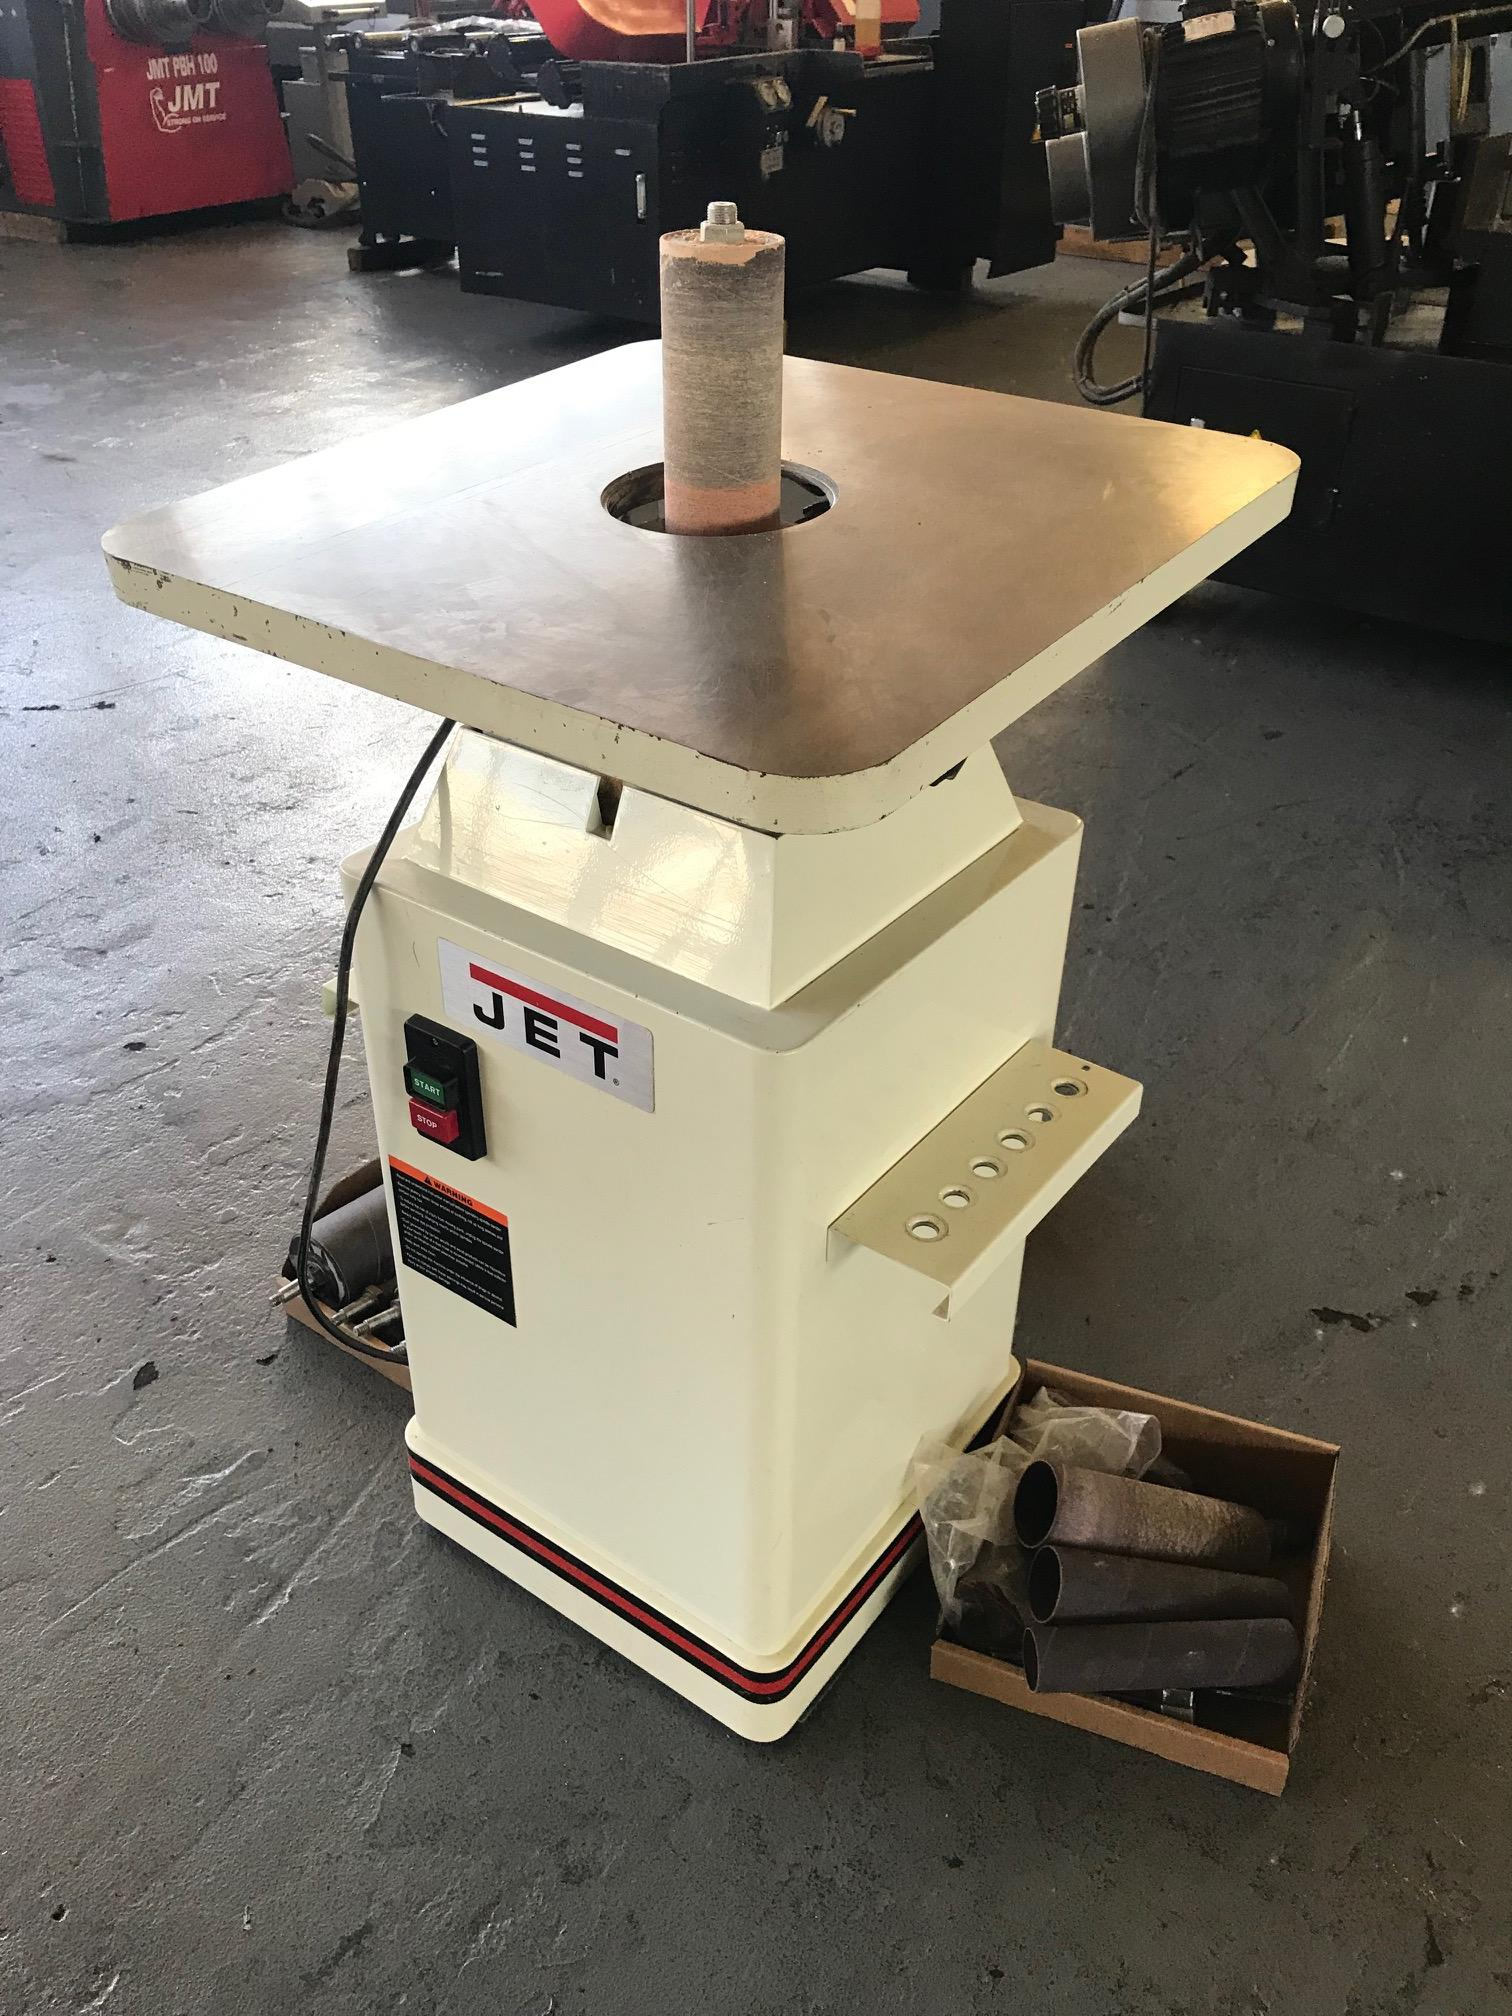 USED JET MODEL JOVS-10 OSCILLATING SPINDLE SANDER, YEAR 2014, STOCK NO. 10623